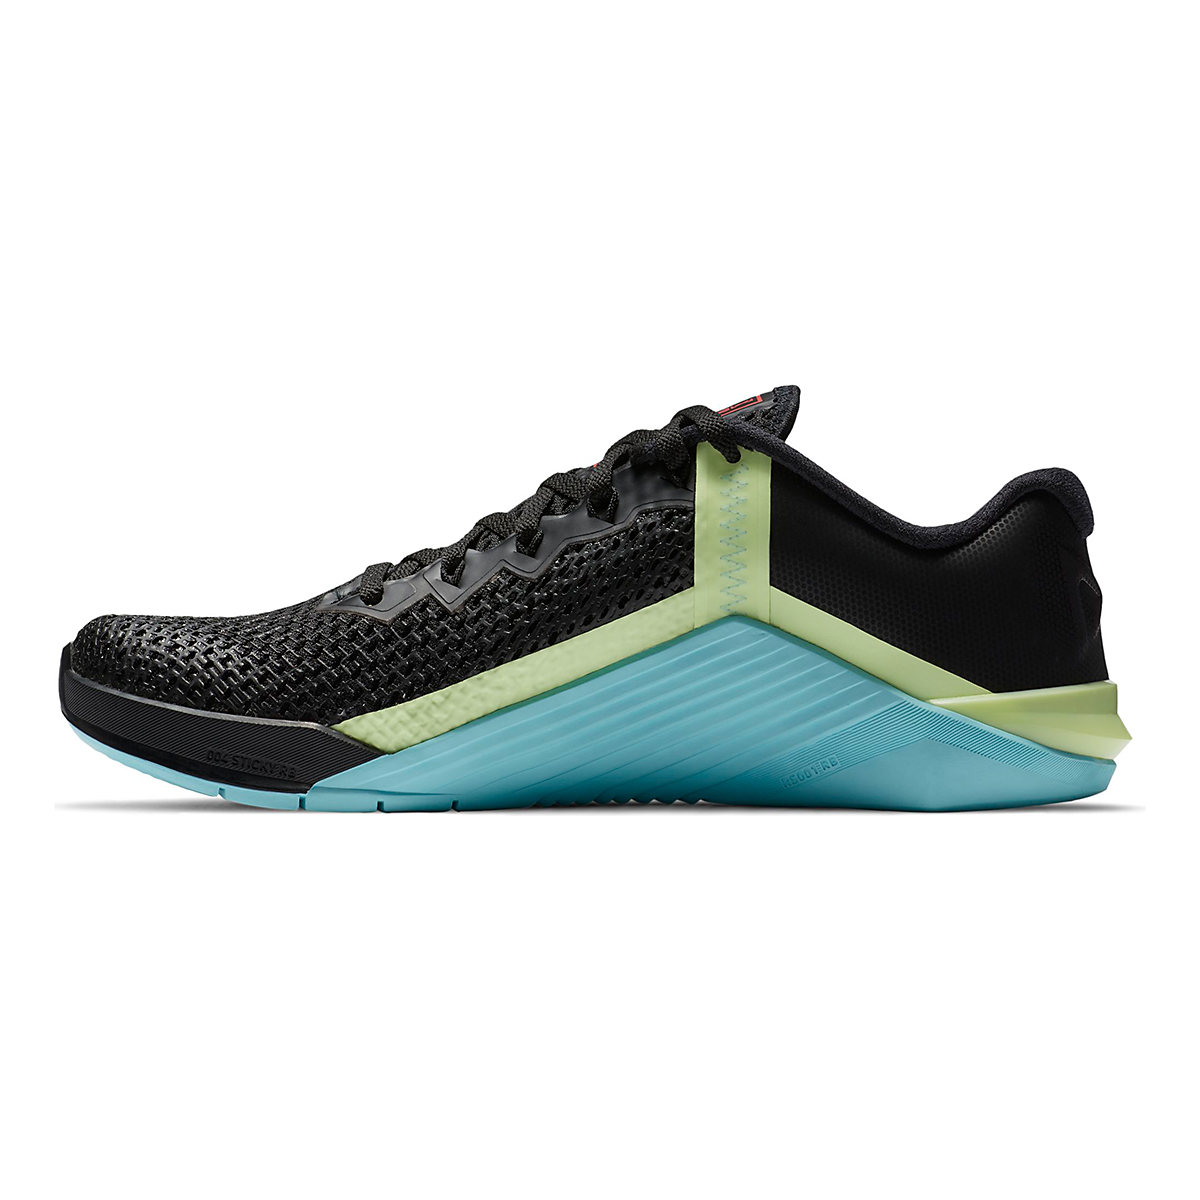 Women's Nike Nike Metcon 6 Training Shoes - Color: Black/White/Glacier Ice/Flash Crimson - Size: 5 - Width: Regular, Black/White/Glacier Ice/Flash Crimson, large, image 2